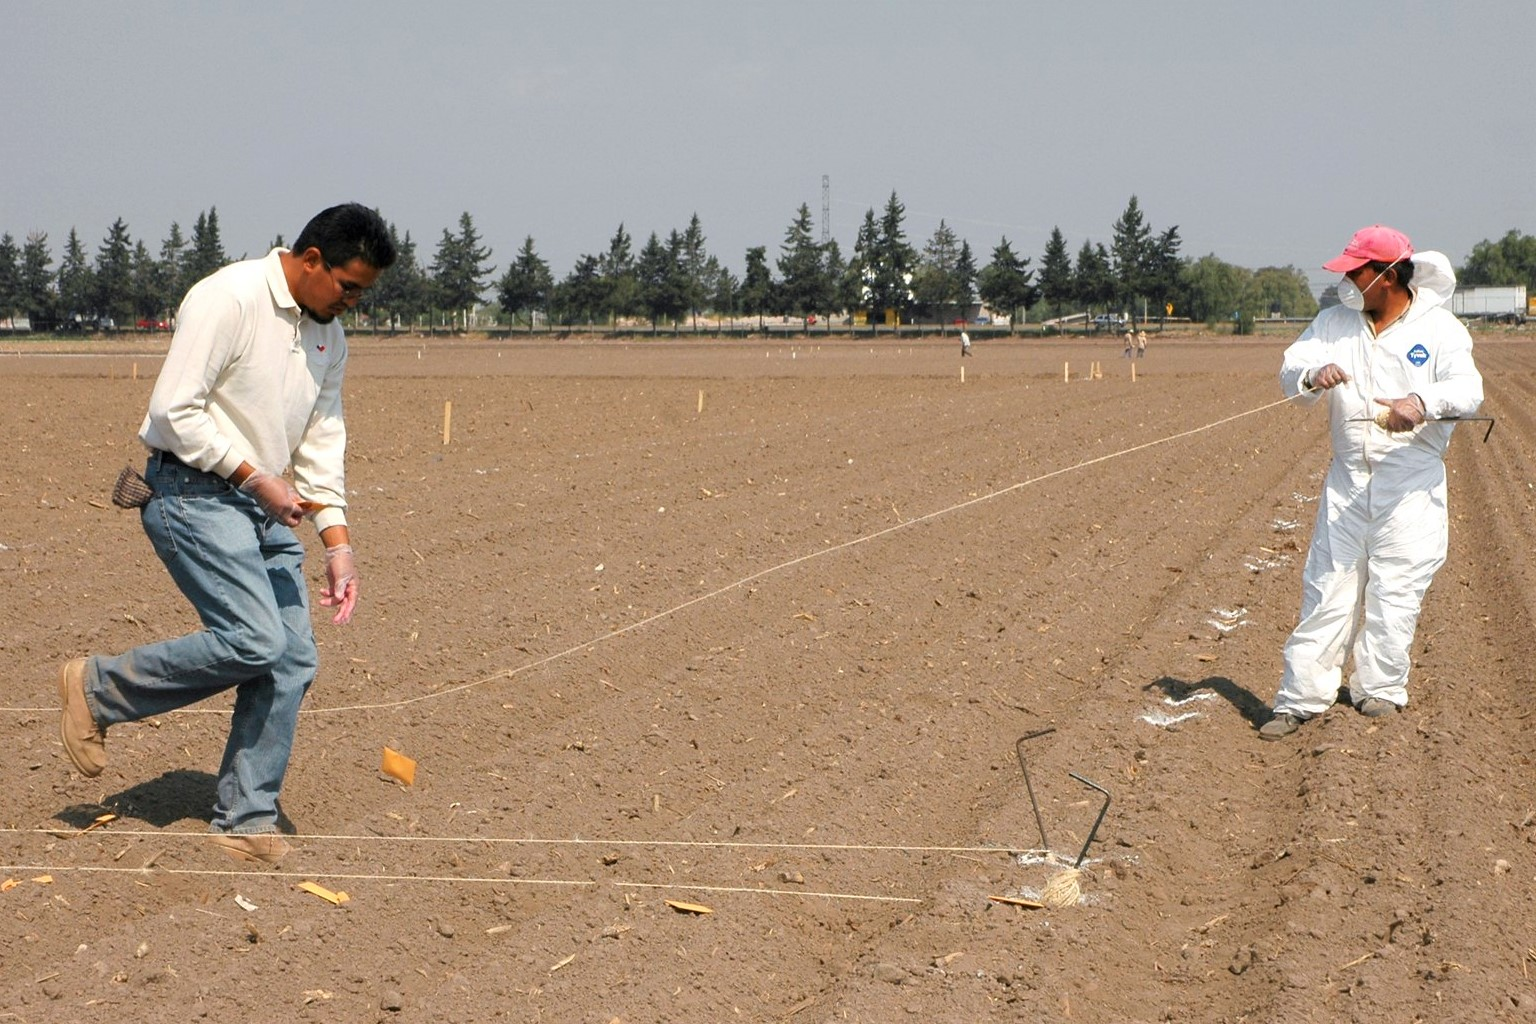 Laying out wheat trials for planting. Credit: CIMMYT